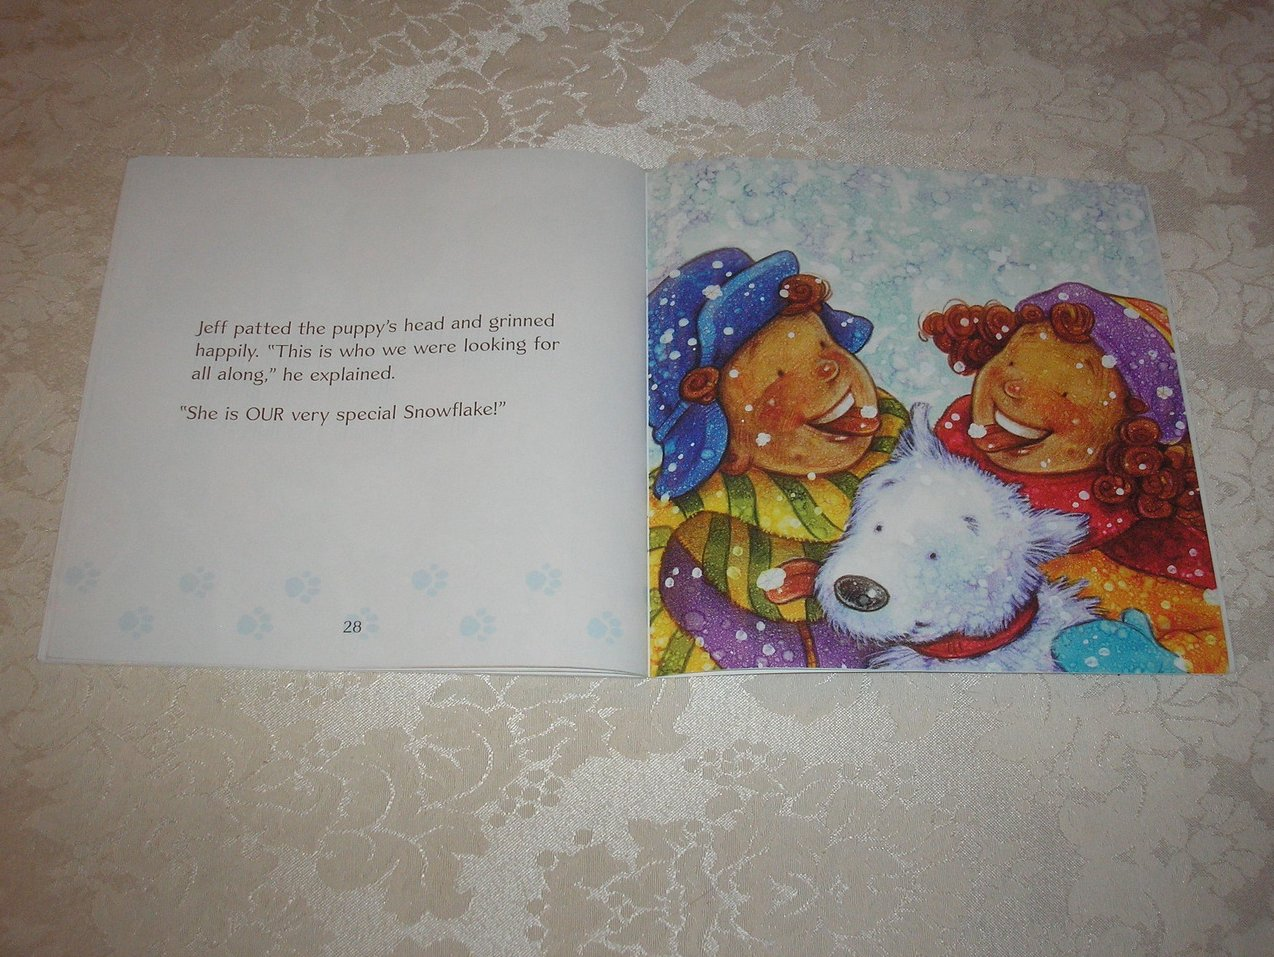 Image 5 of A Very Special Snowflake Don Hoffman Very Good Used Softcover